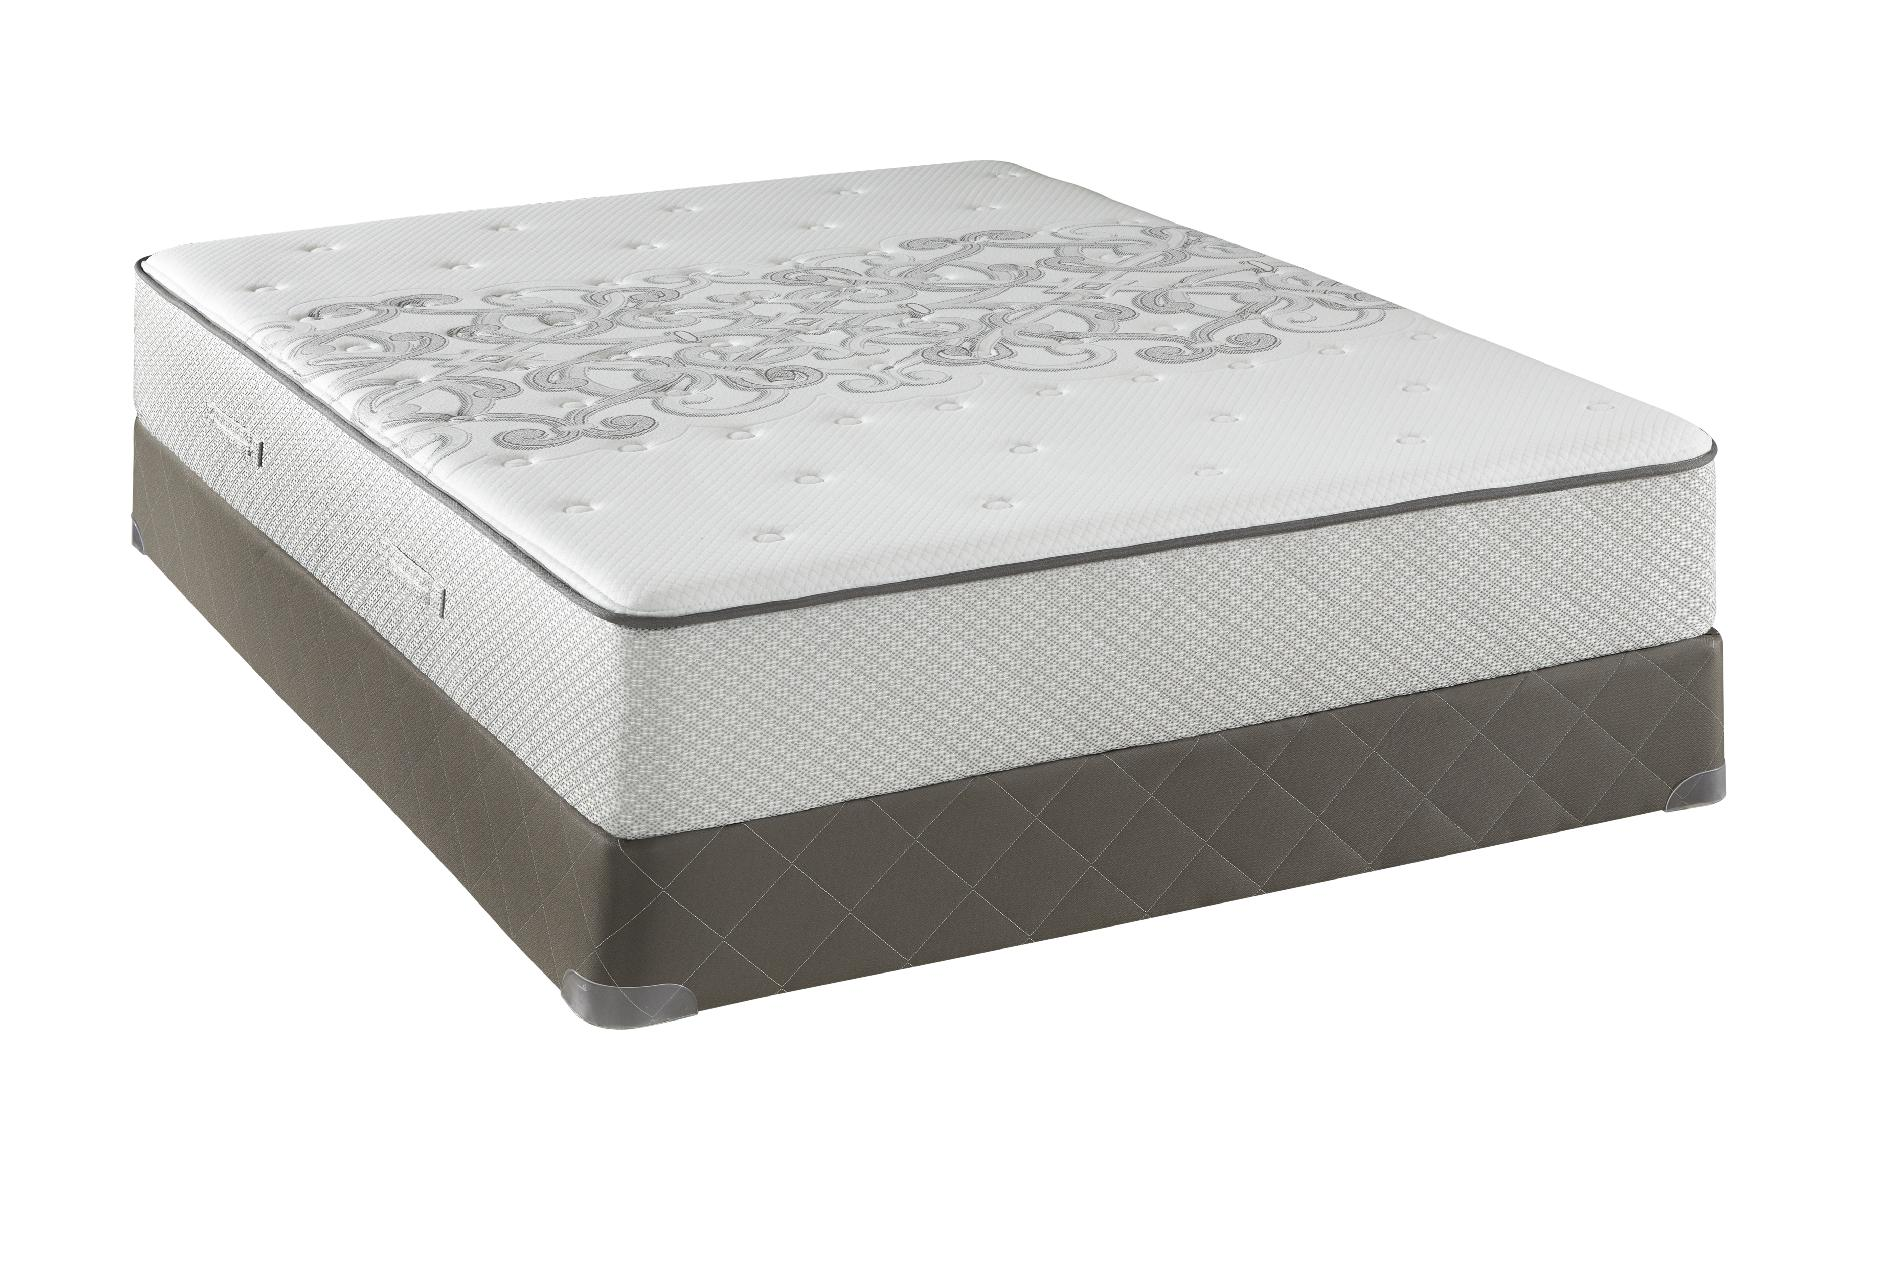 Sealy Posturepedic Fergus Falls Ti2 II, Ultra Firm, Full Mattress Only